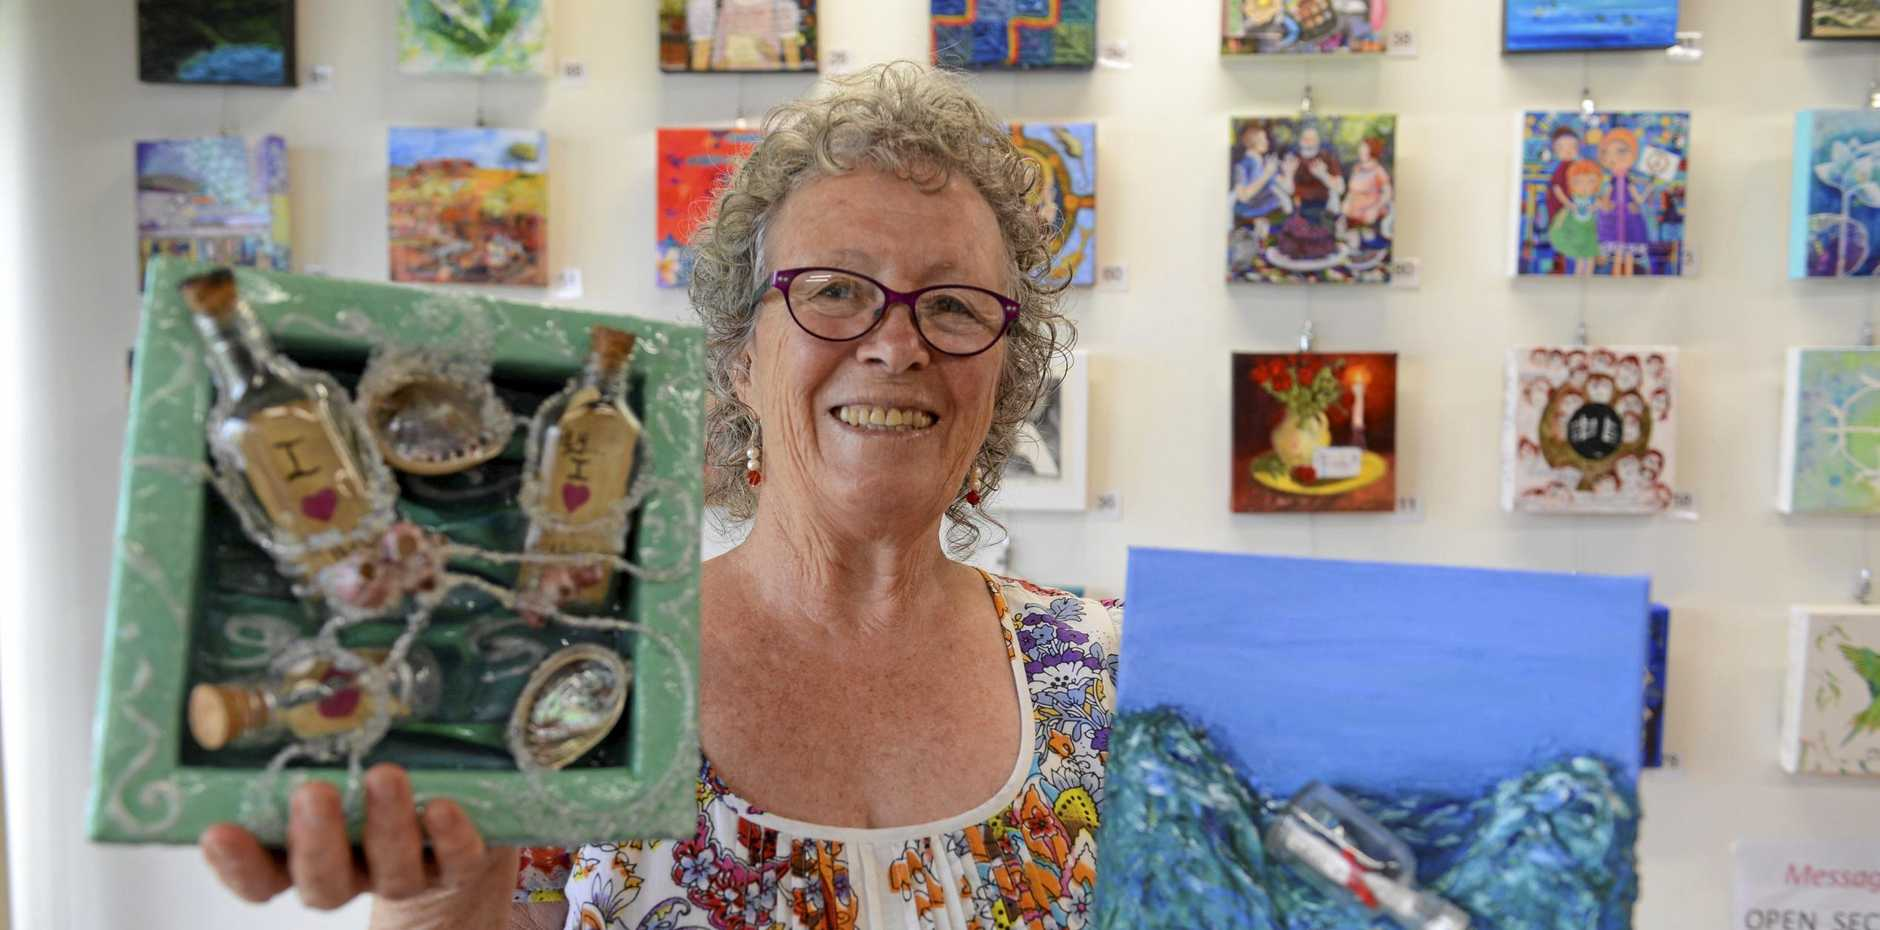 Lower Clarence Arts and Crafts member and 8x8 co-ordinator Suz Monin with two of the many exhibits that were entered into last year's competition. Entries are now open for this year's event.